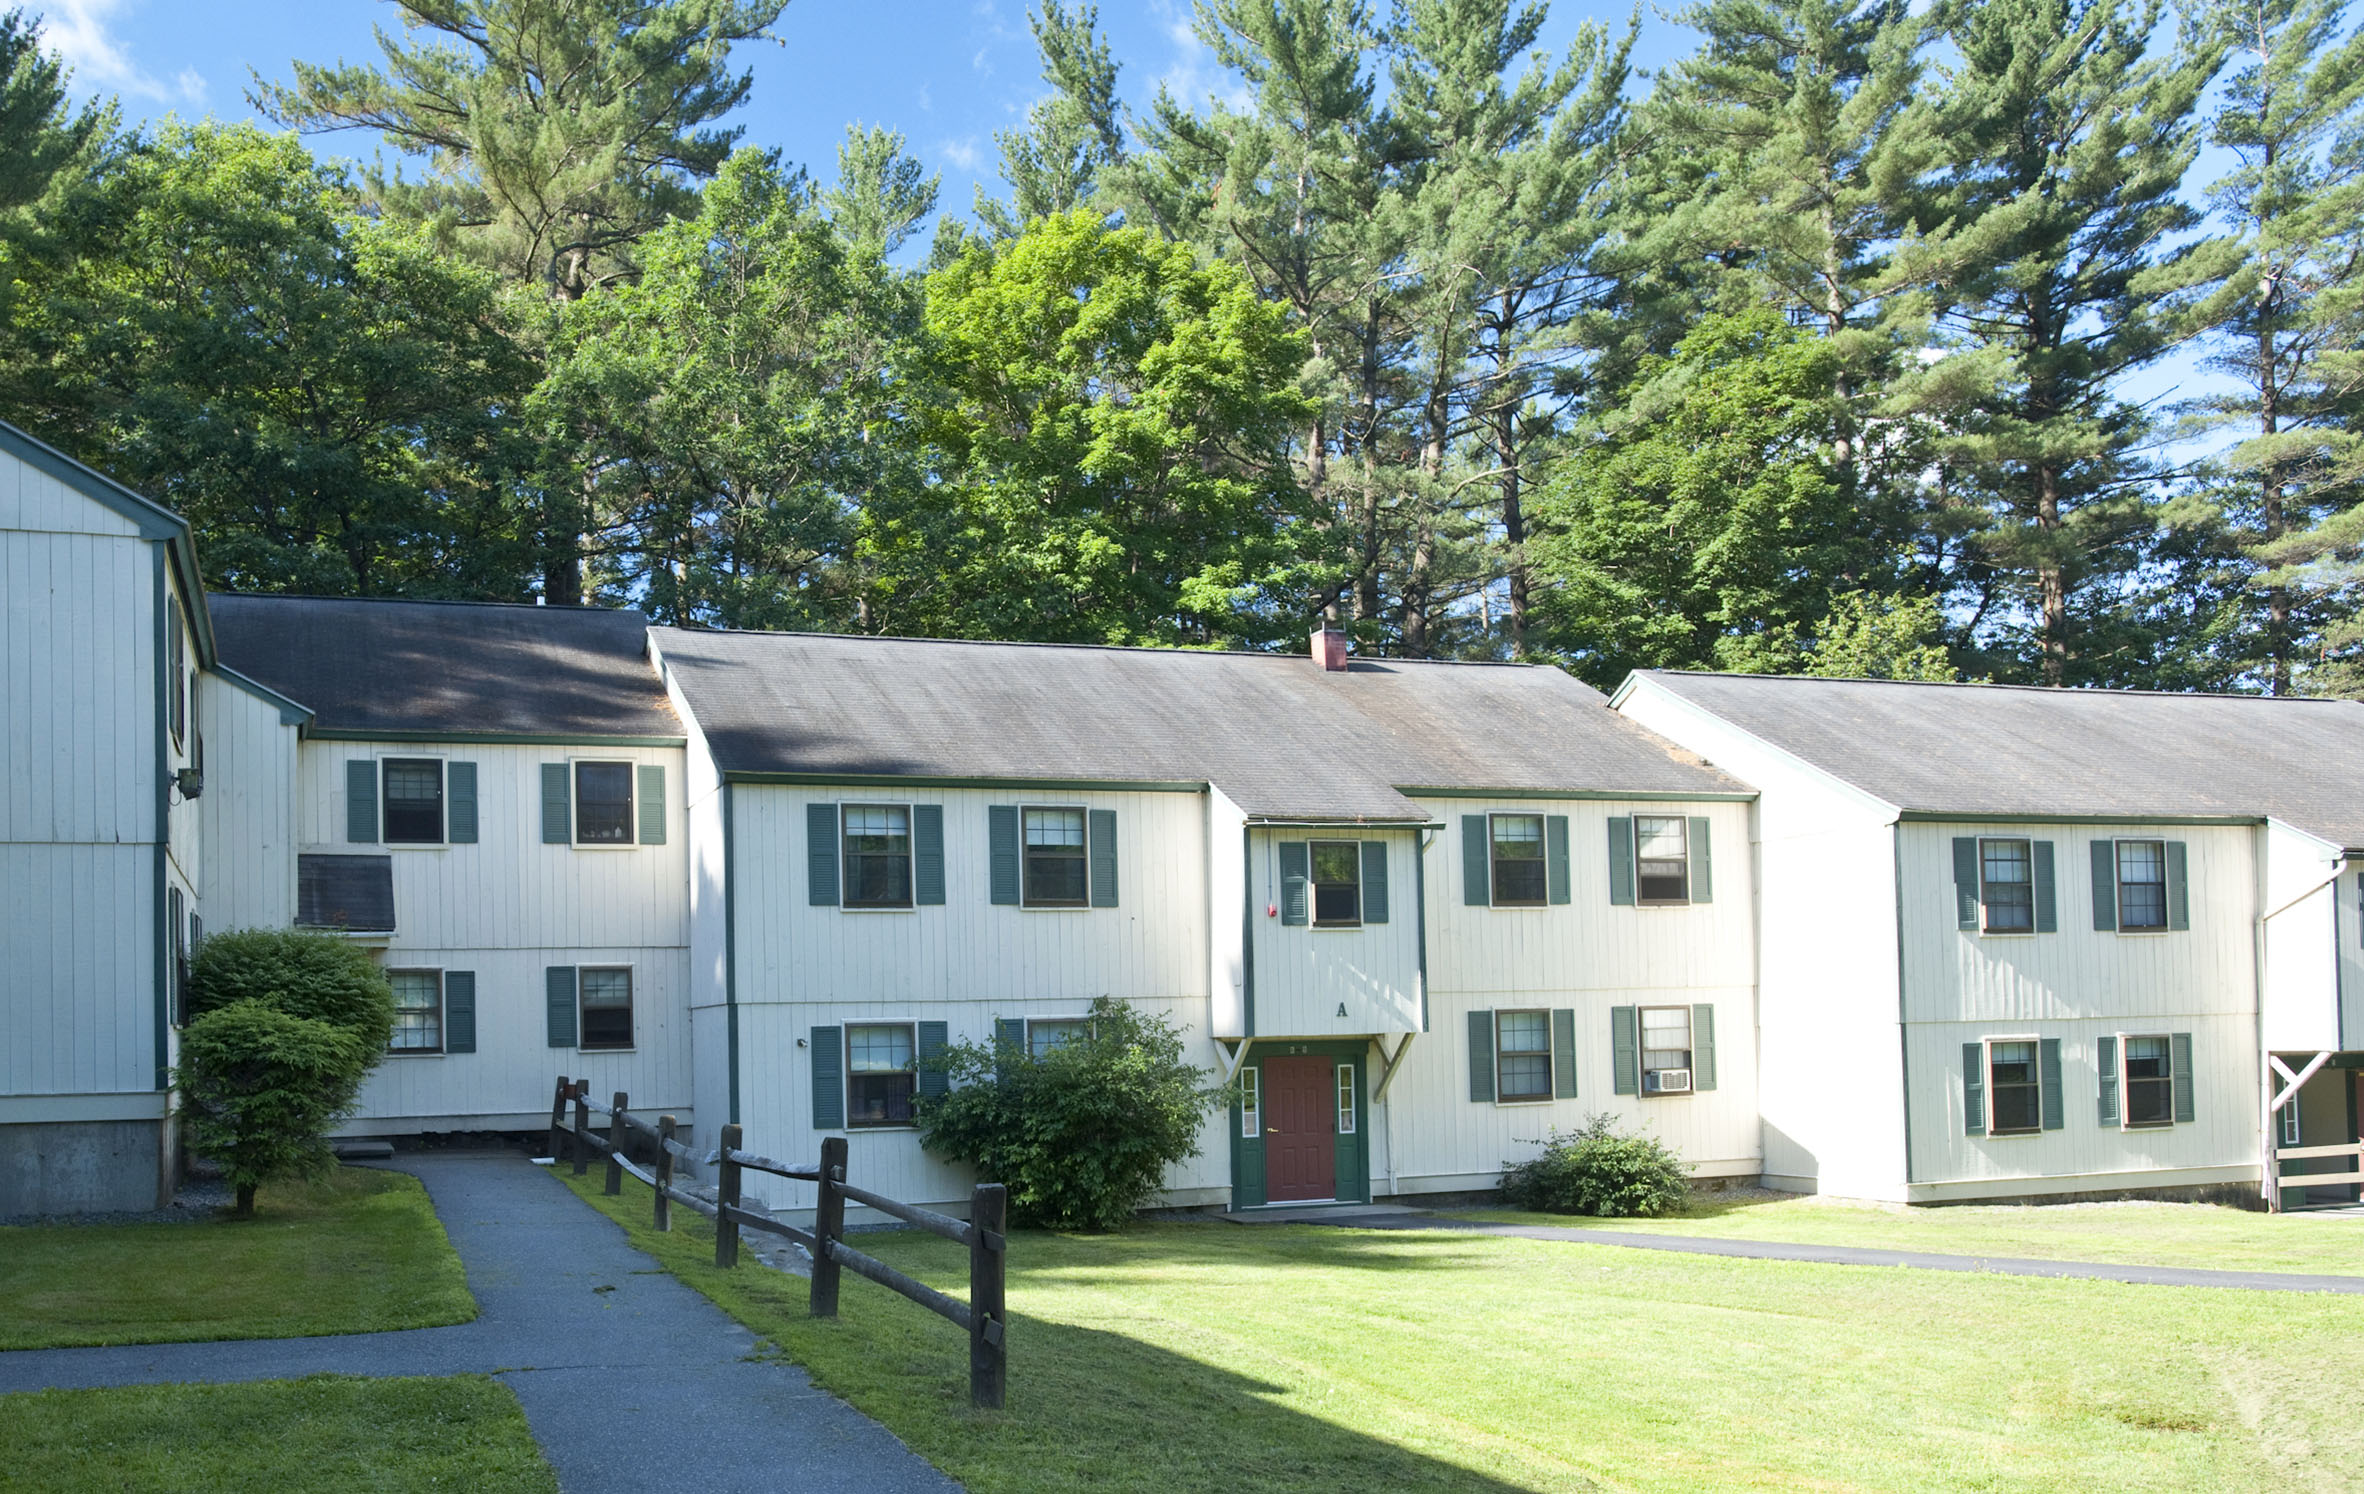 Affordable Housing, NH & MA locations